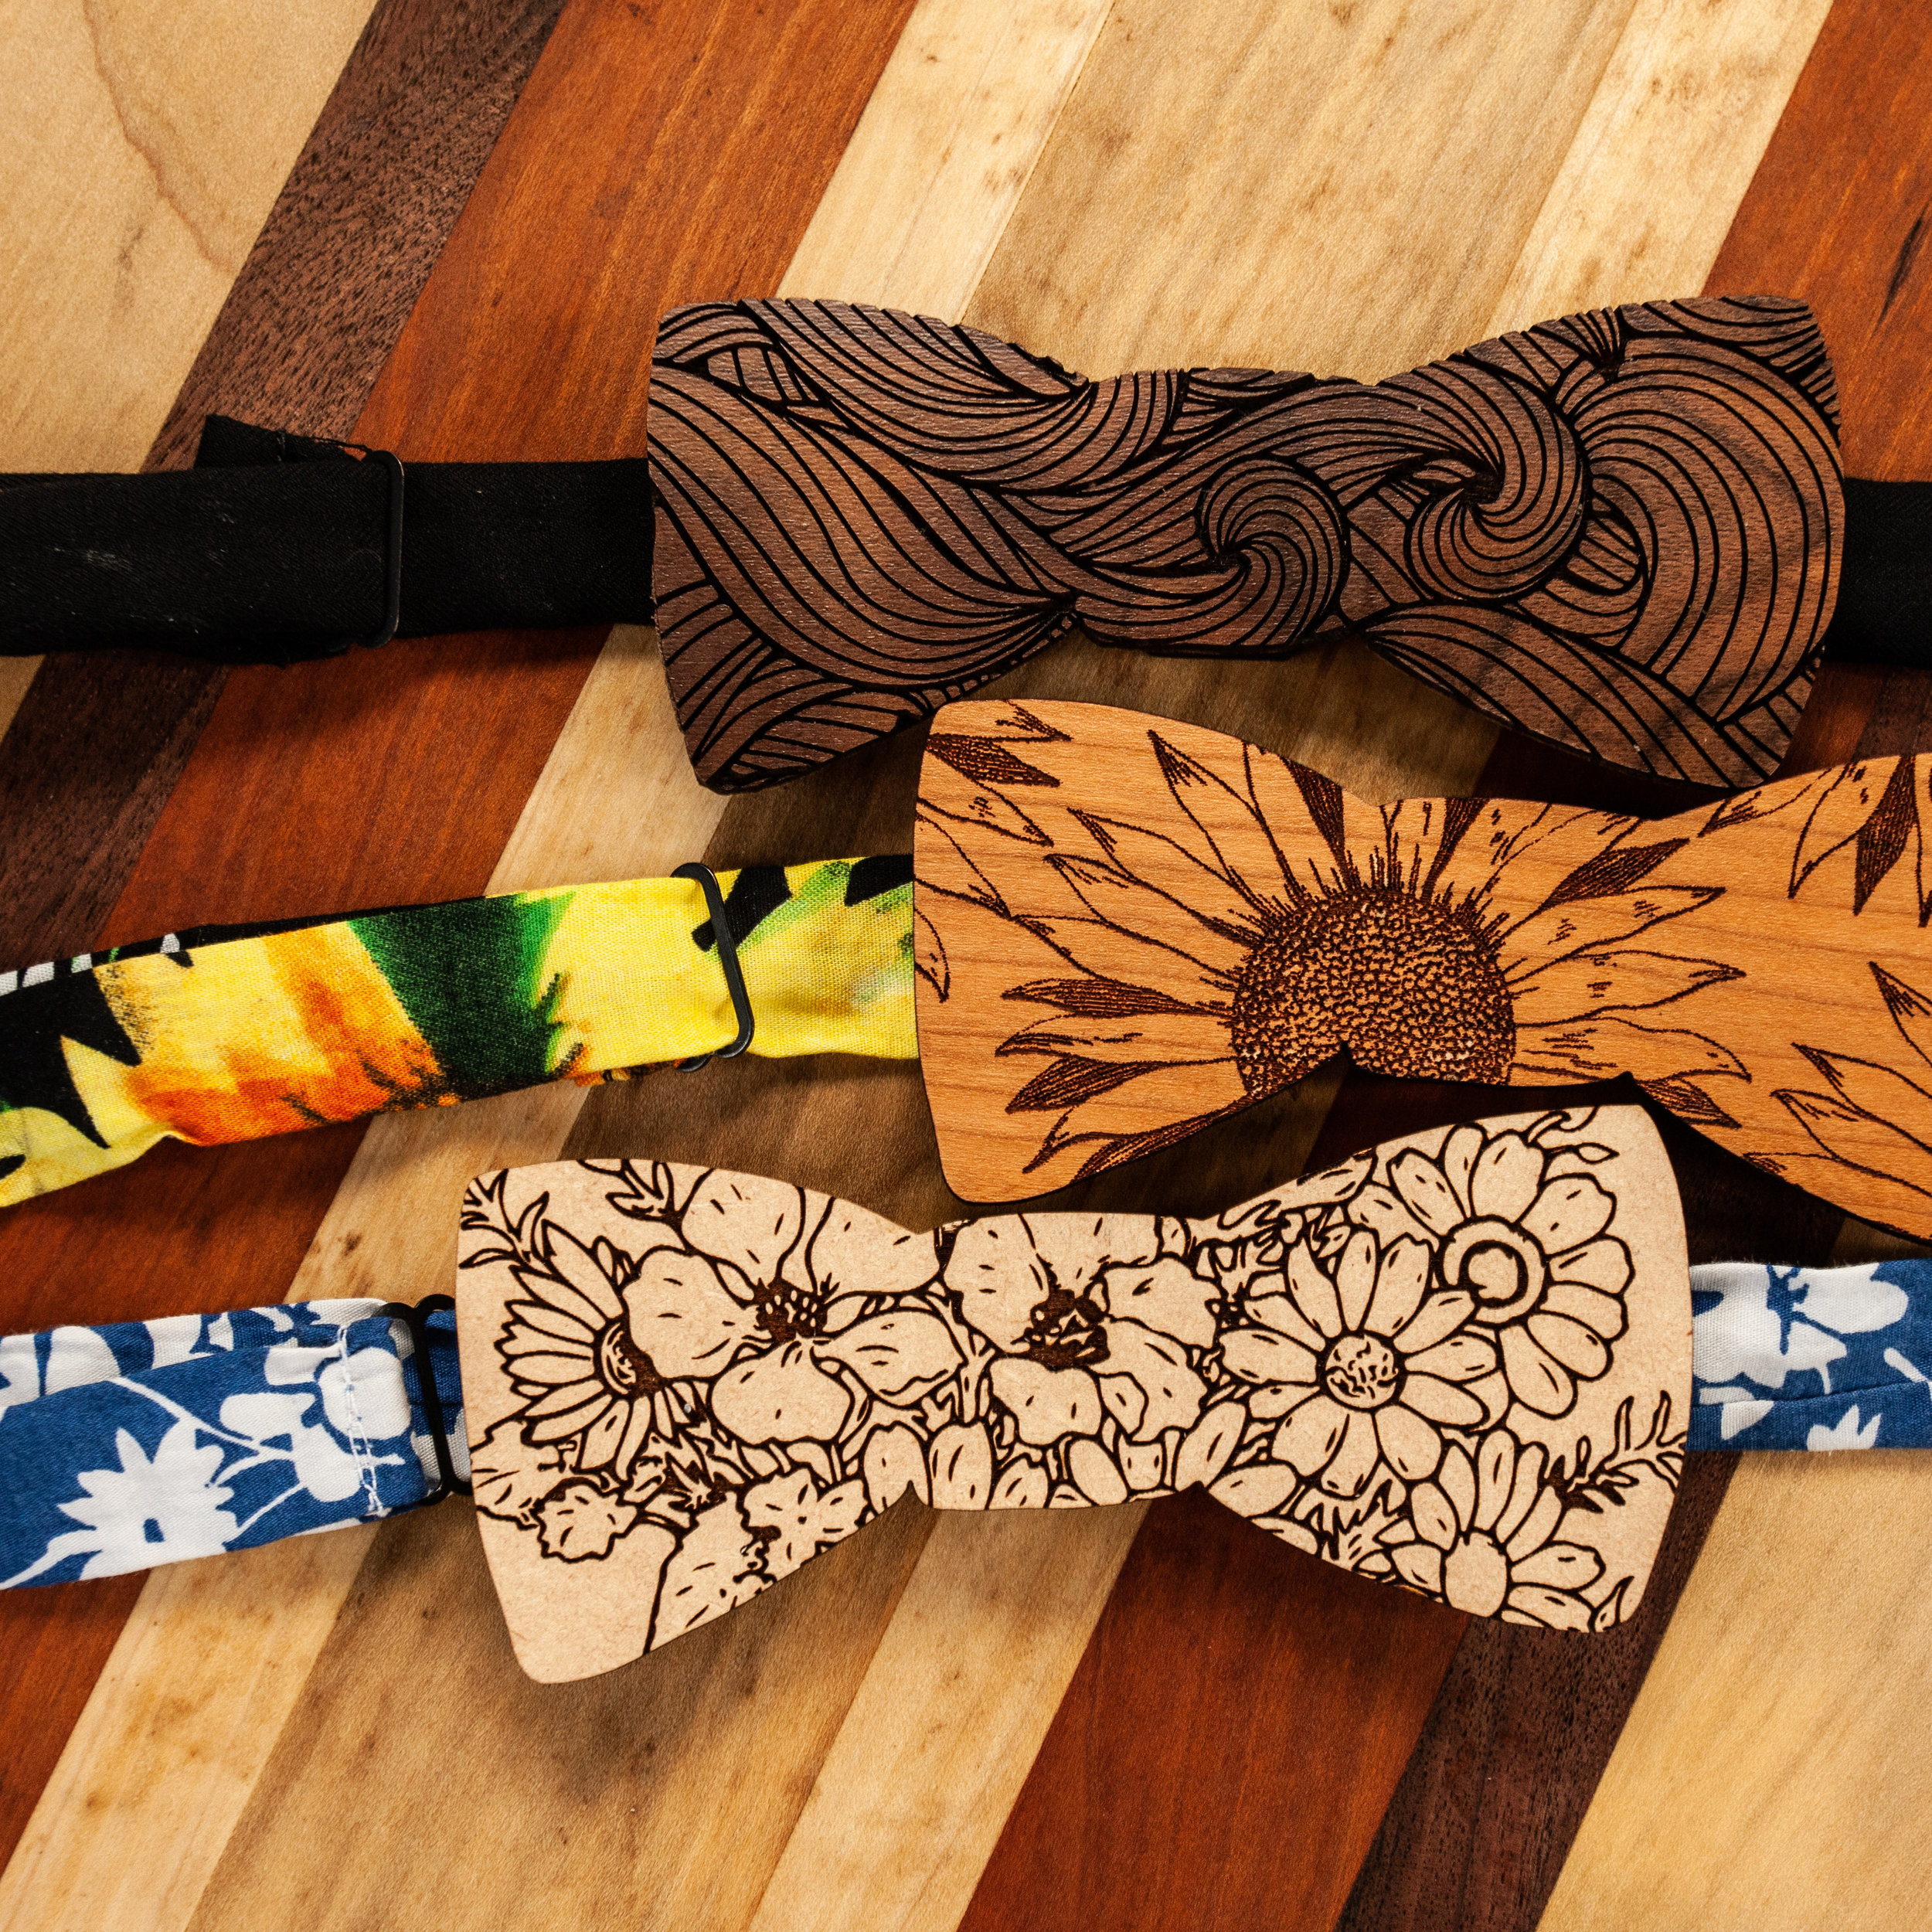 No. 1 BowTies - Laser Engraved Wooden Bow Ties